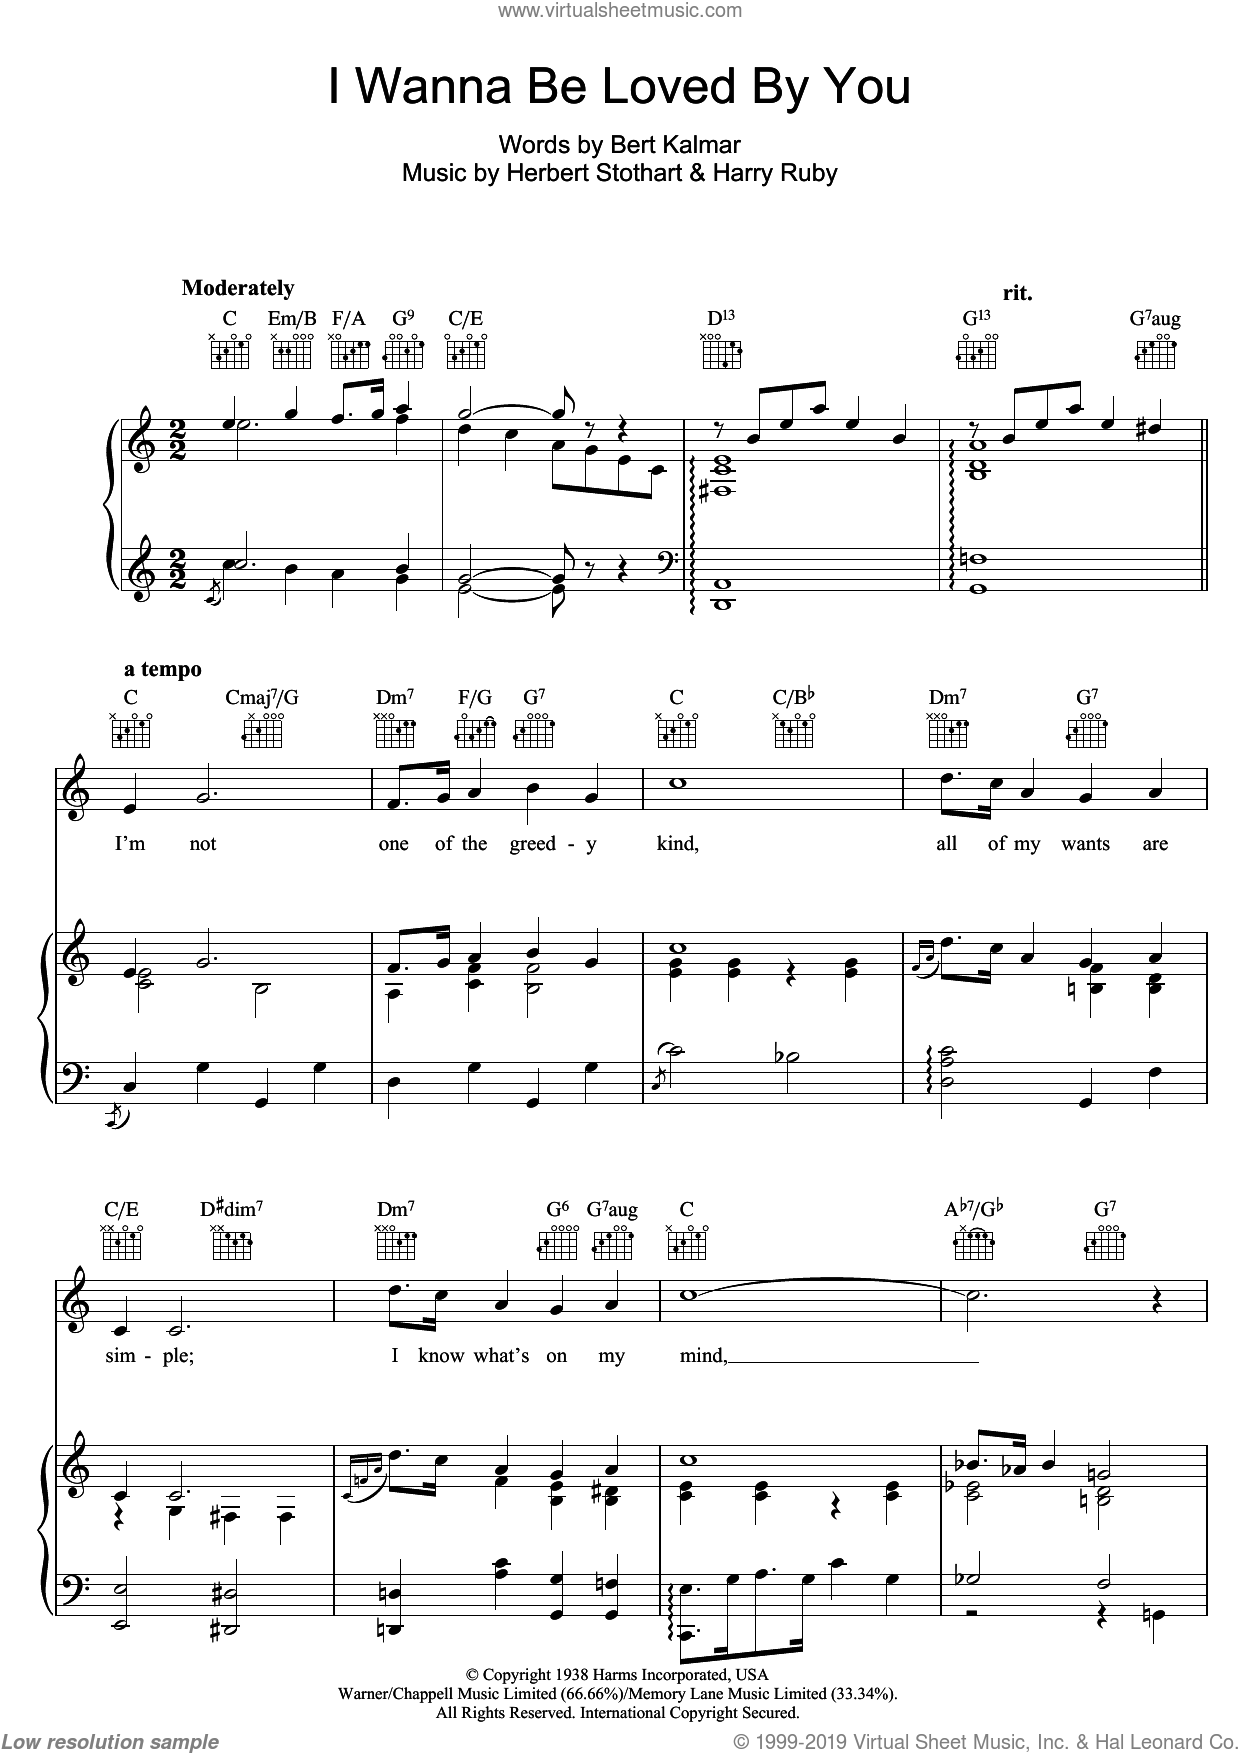 I Wanna Be Loved By You sheet music for voice, piano or guitar by Marilyn Monroe, Harry Ruby, Herbert Stothart and Bert Kalmar, intermediate skill level